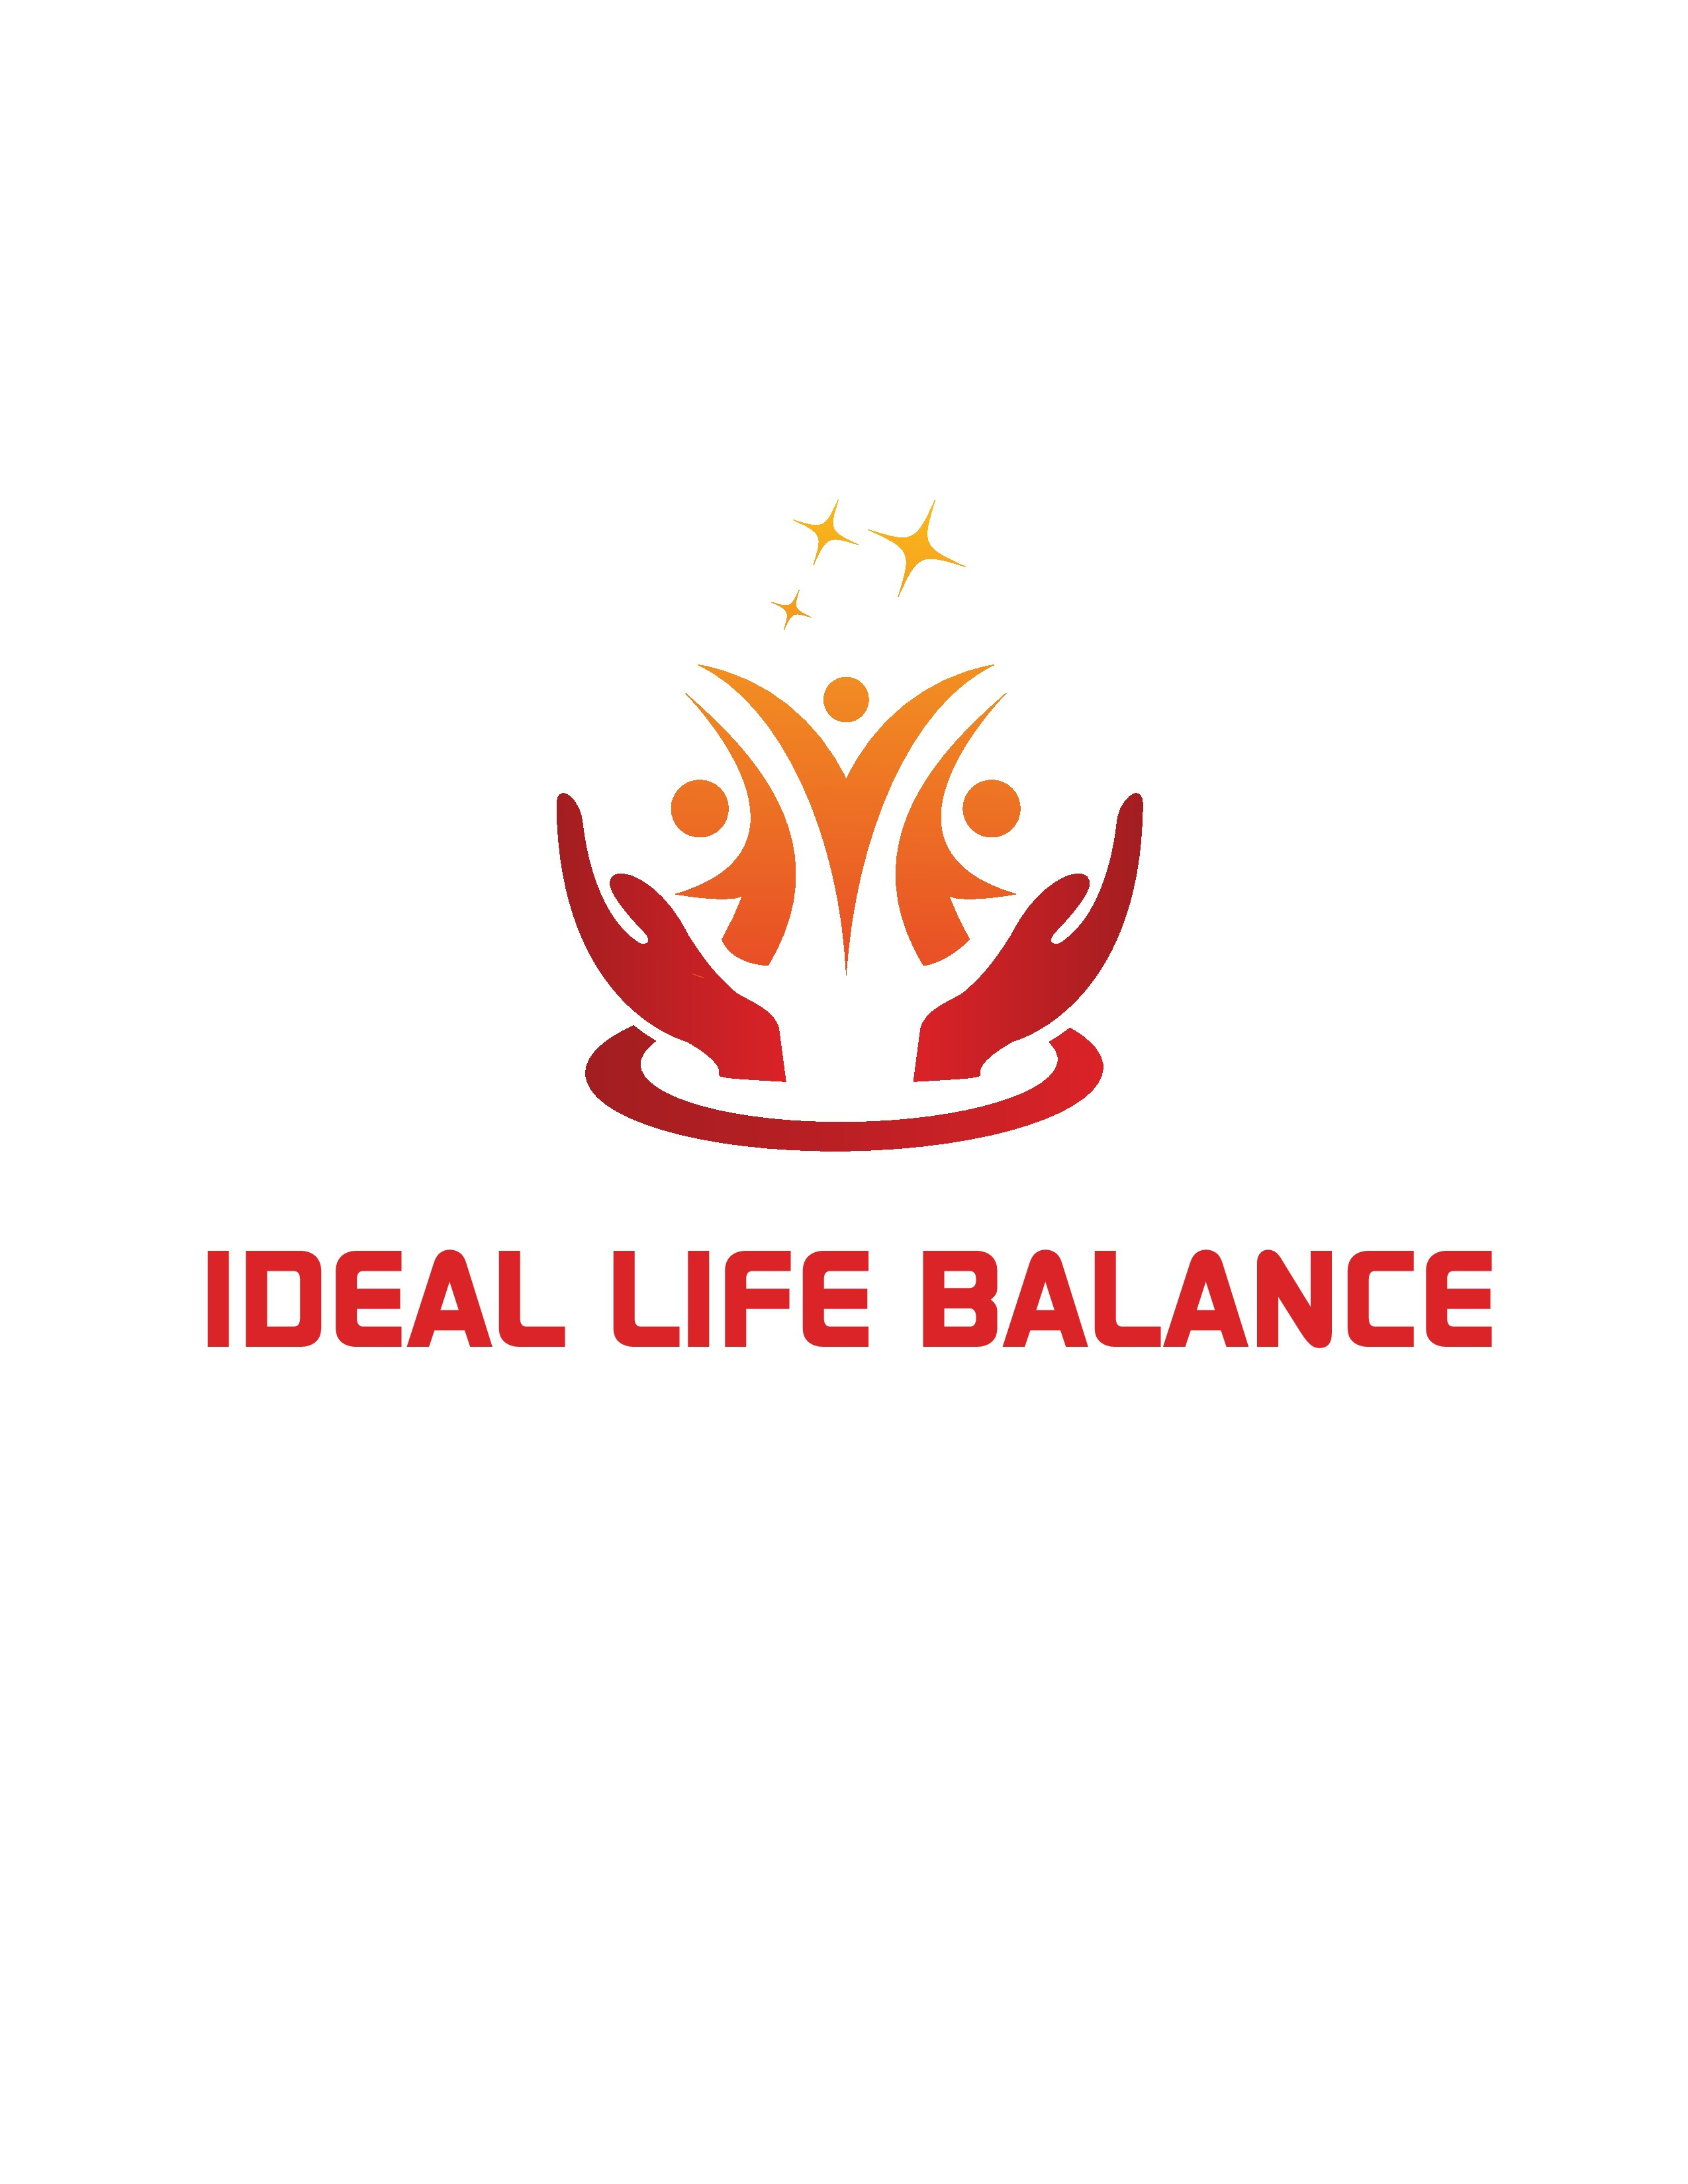 Healthy Body + Healthy Mind = The Ideal You